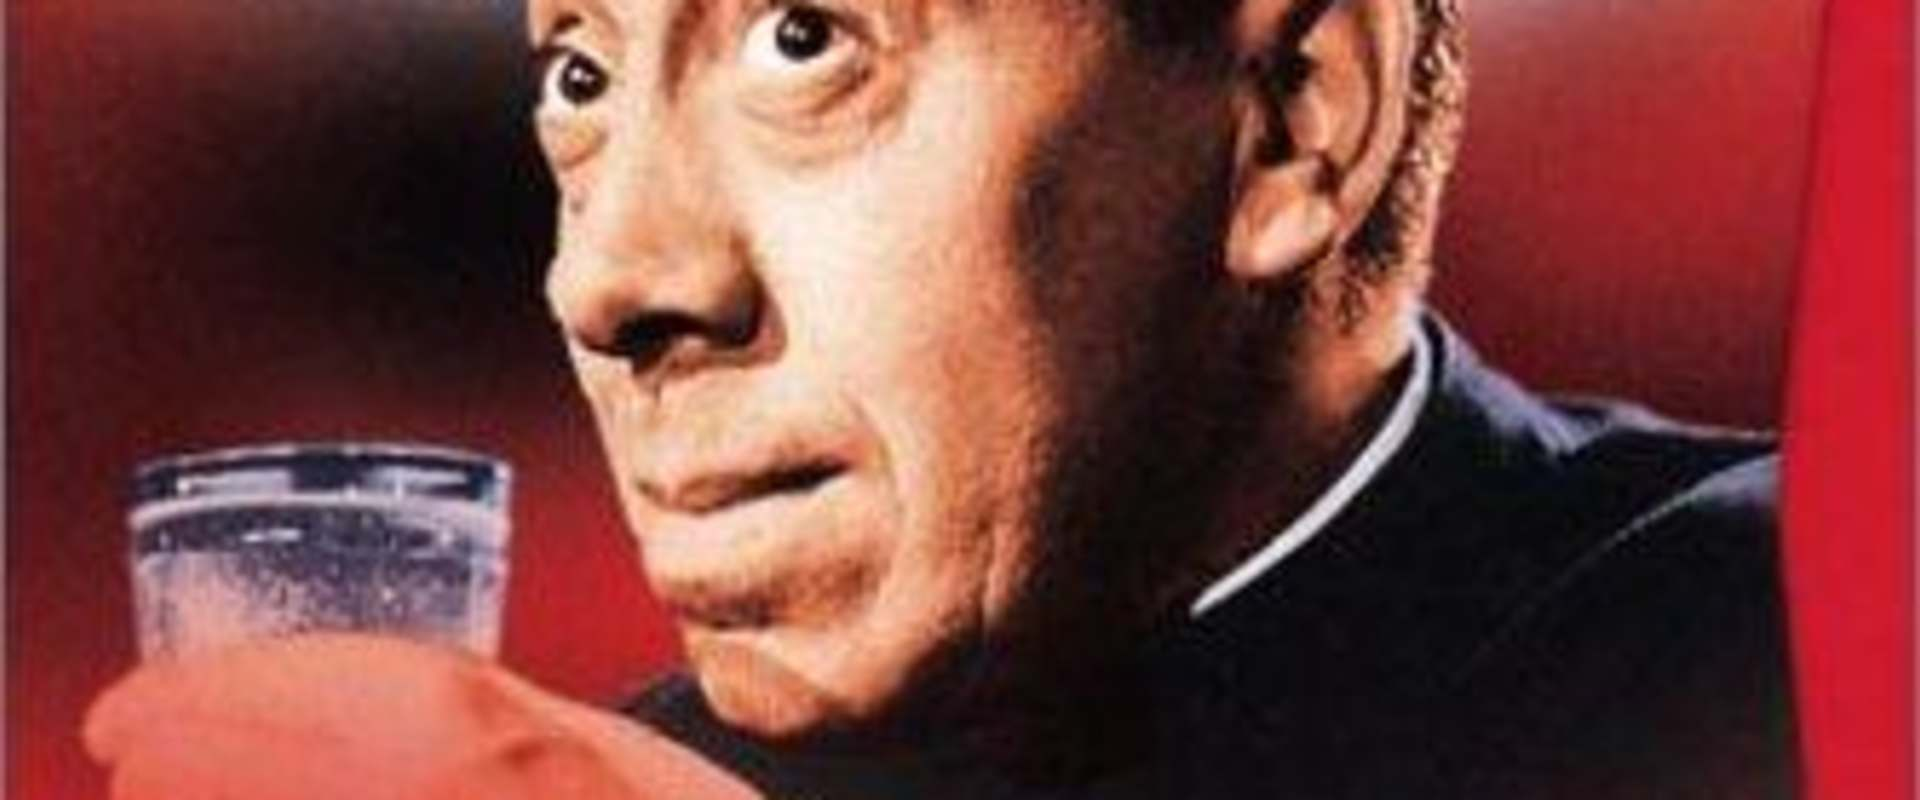 Don Camillo monsignore... ma non troppo background 1